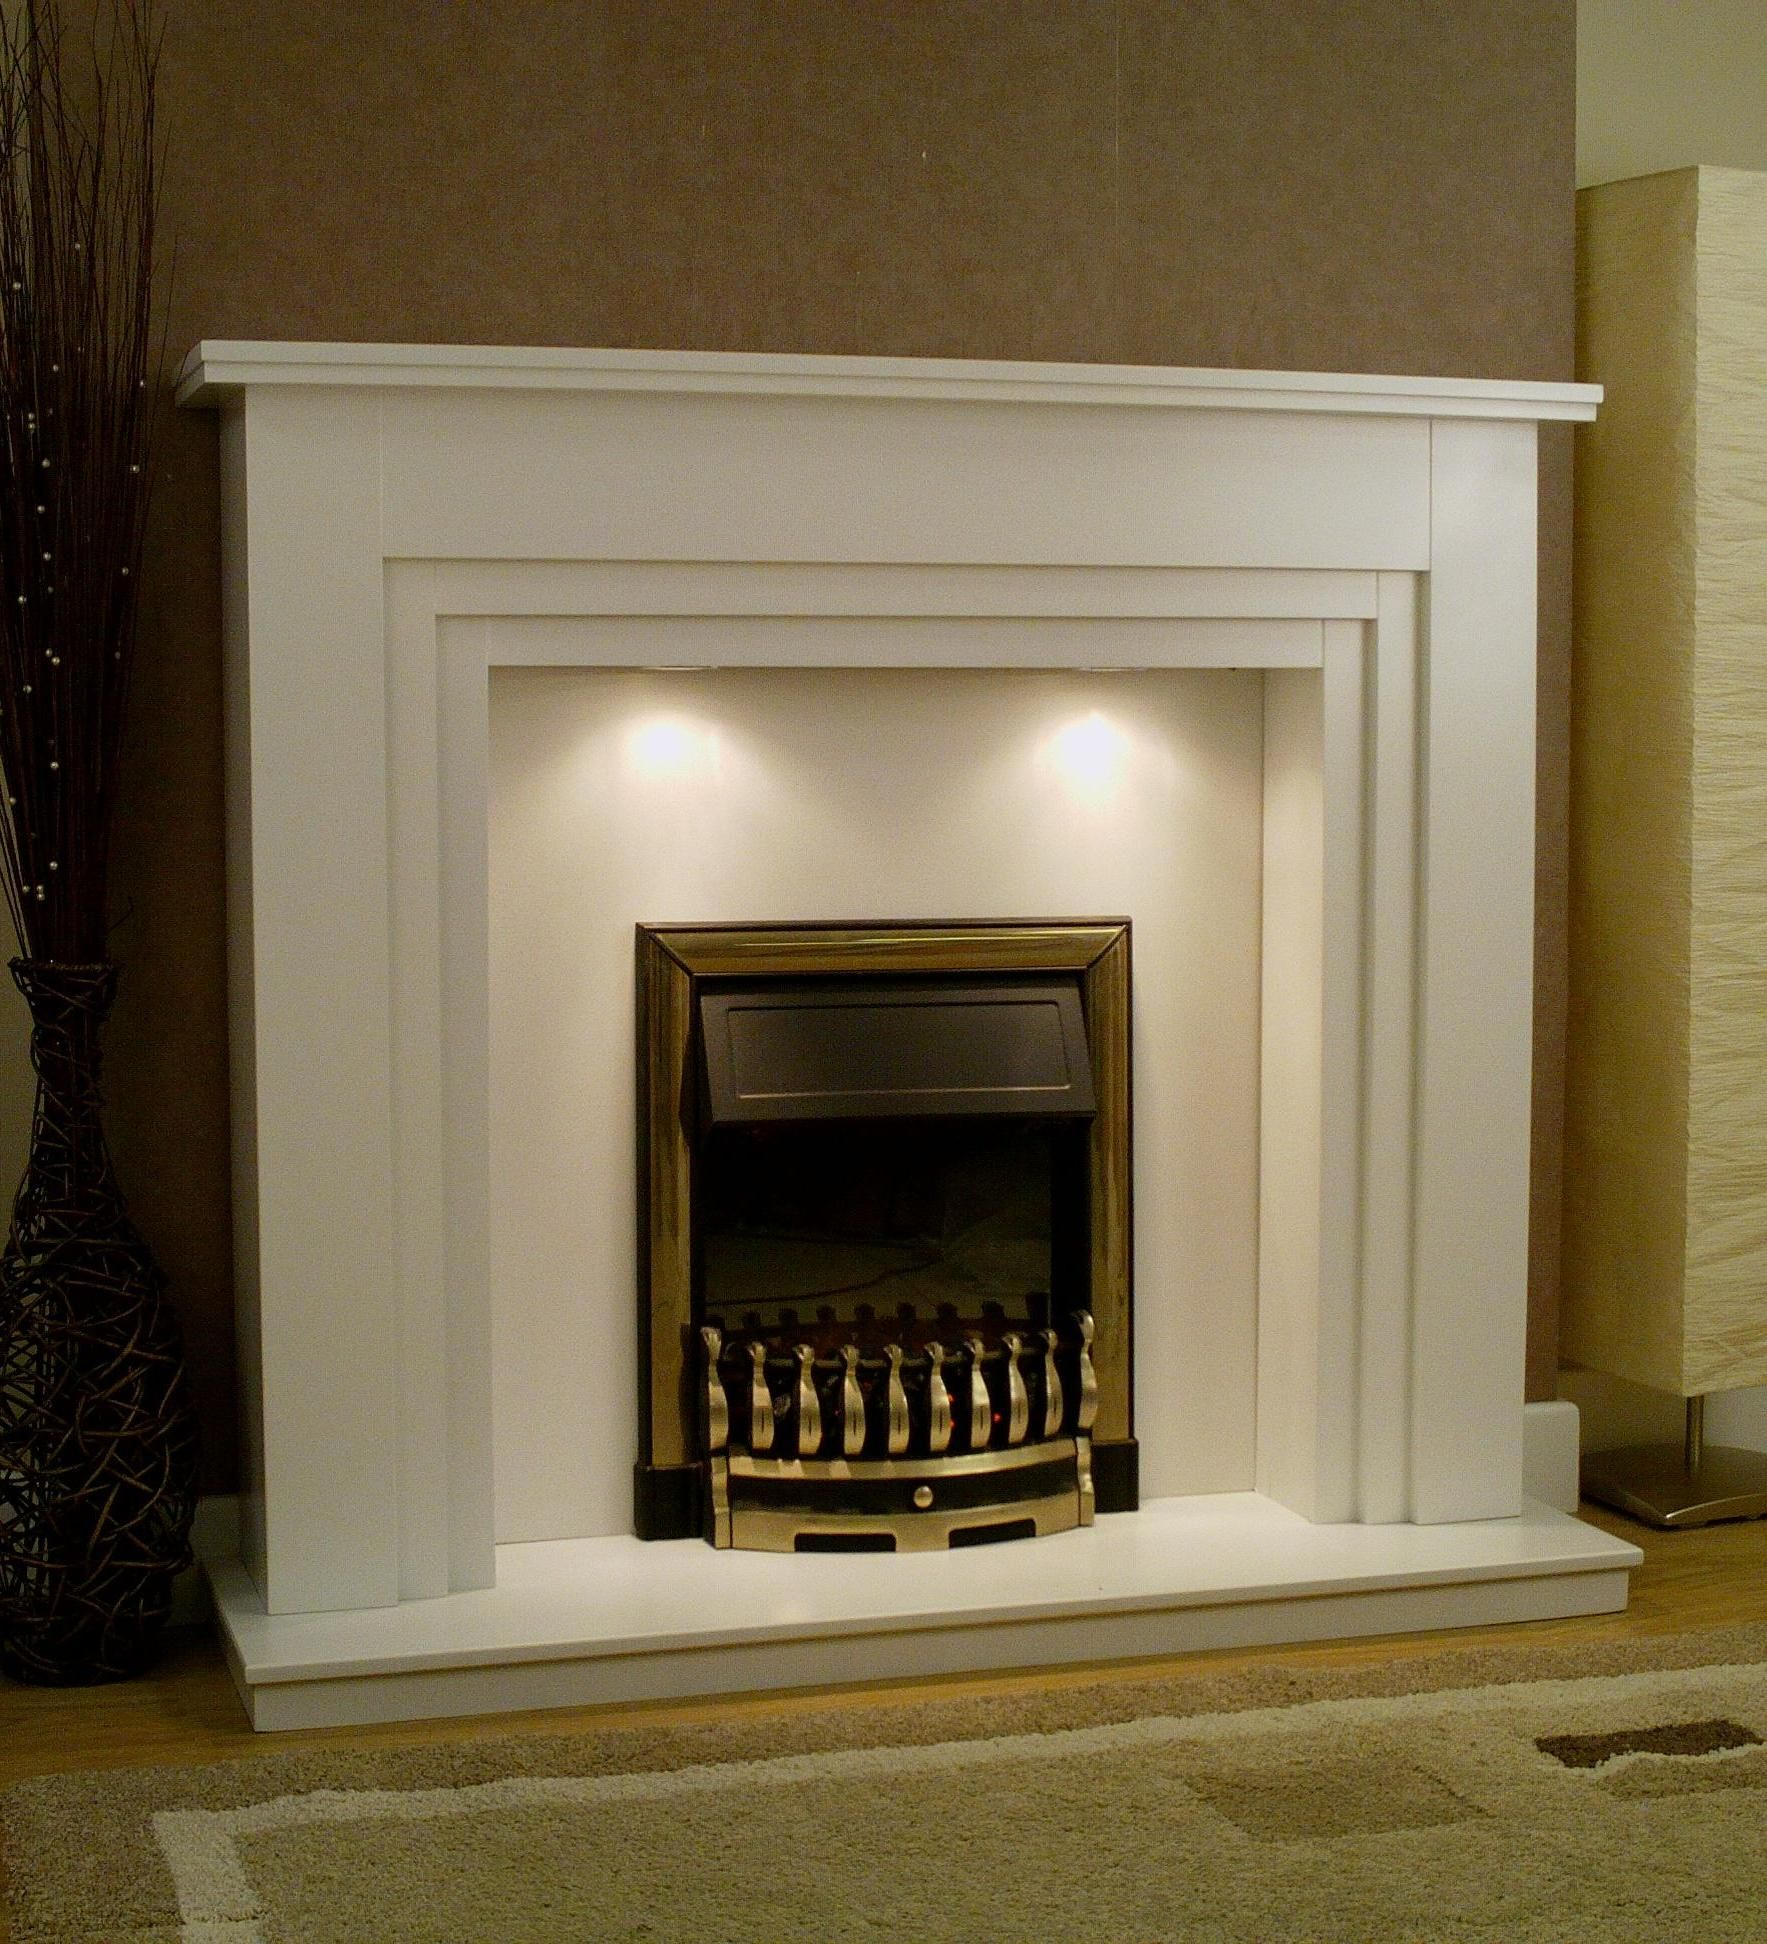 axon apollo 54 wooden fireplace surround with down lights option